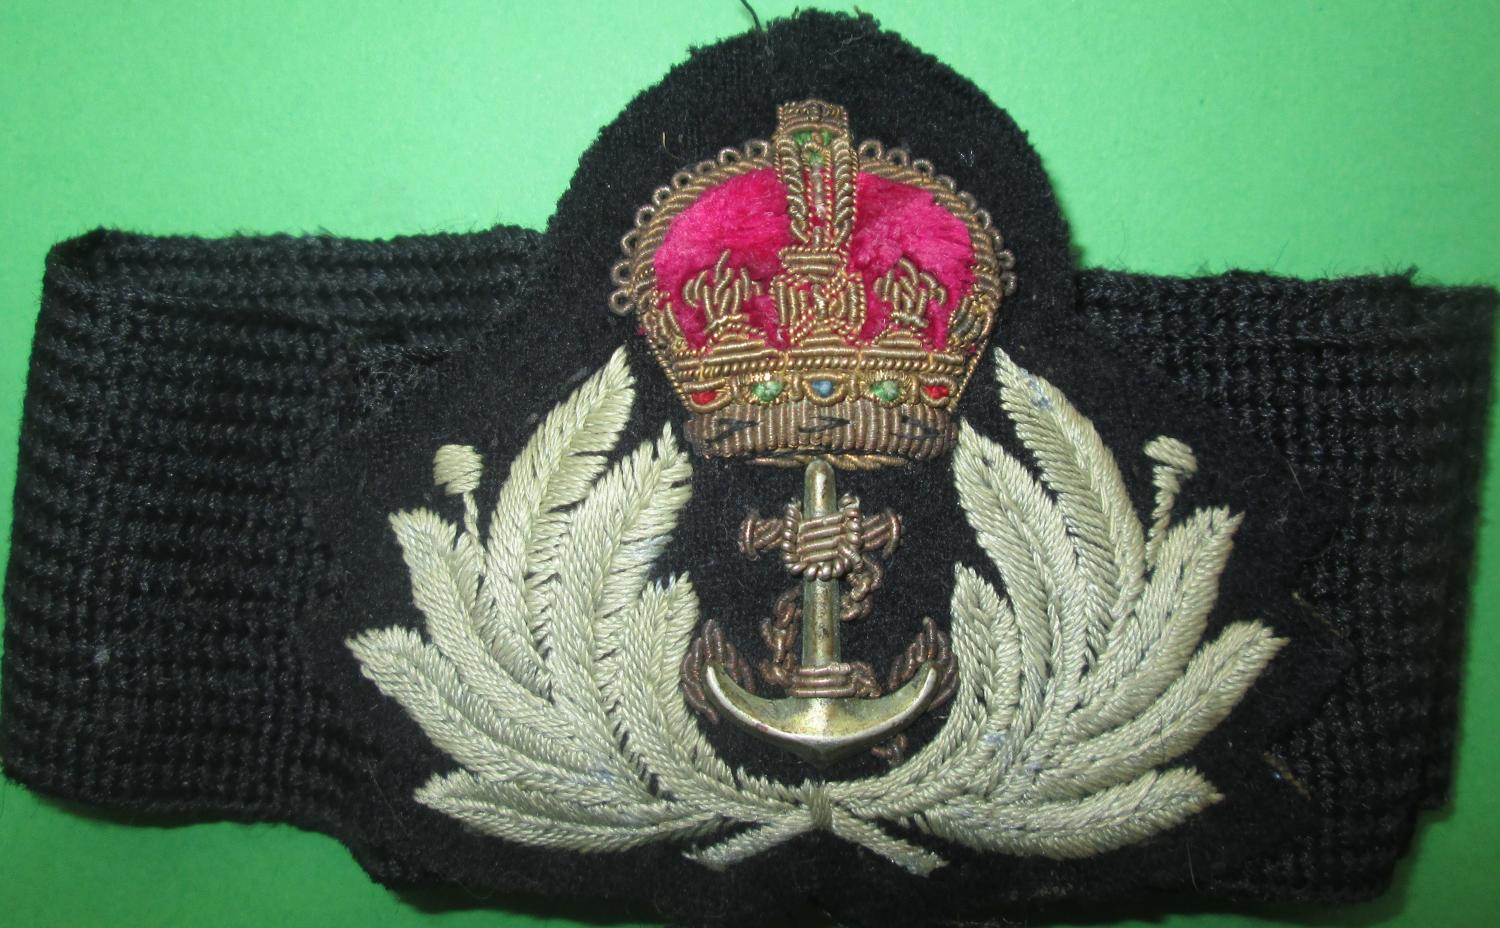 A PRE 1952 KINGS CROWN WOMAN'S ROYAL NAVY SERVICE CAP BADGE